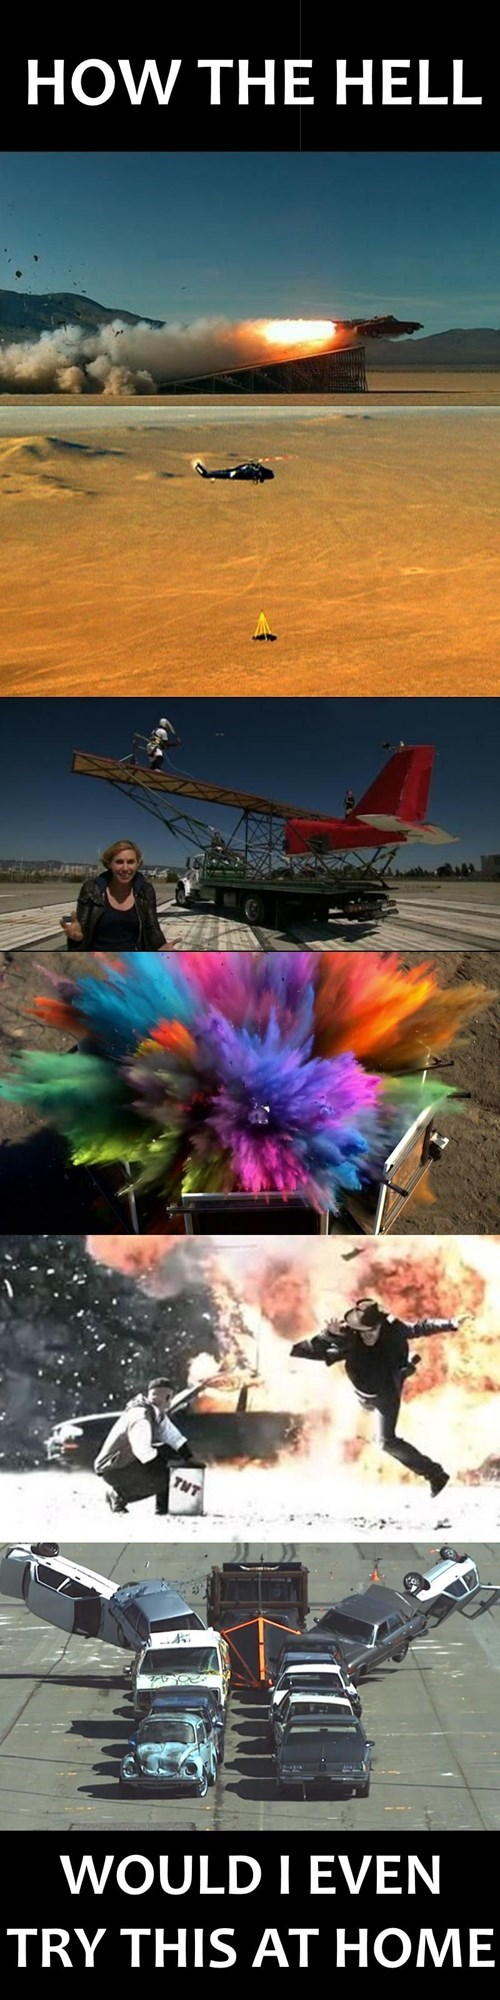 Mythbusters Doesn't Make a Whole Lot of Sense Sometimes